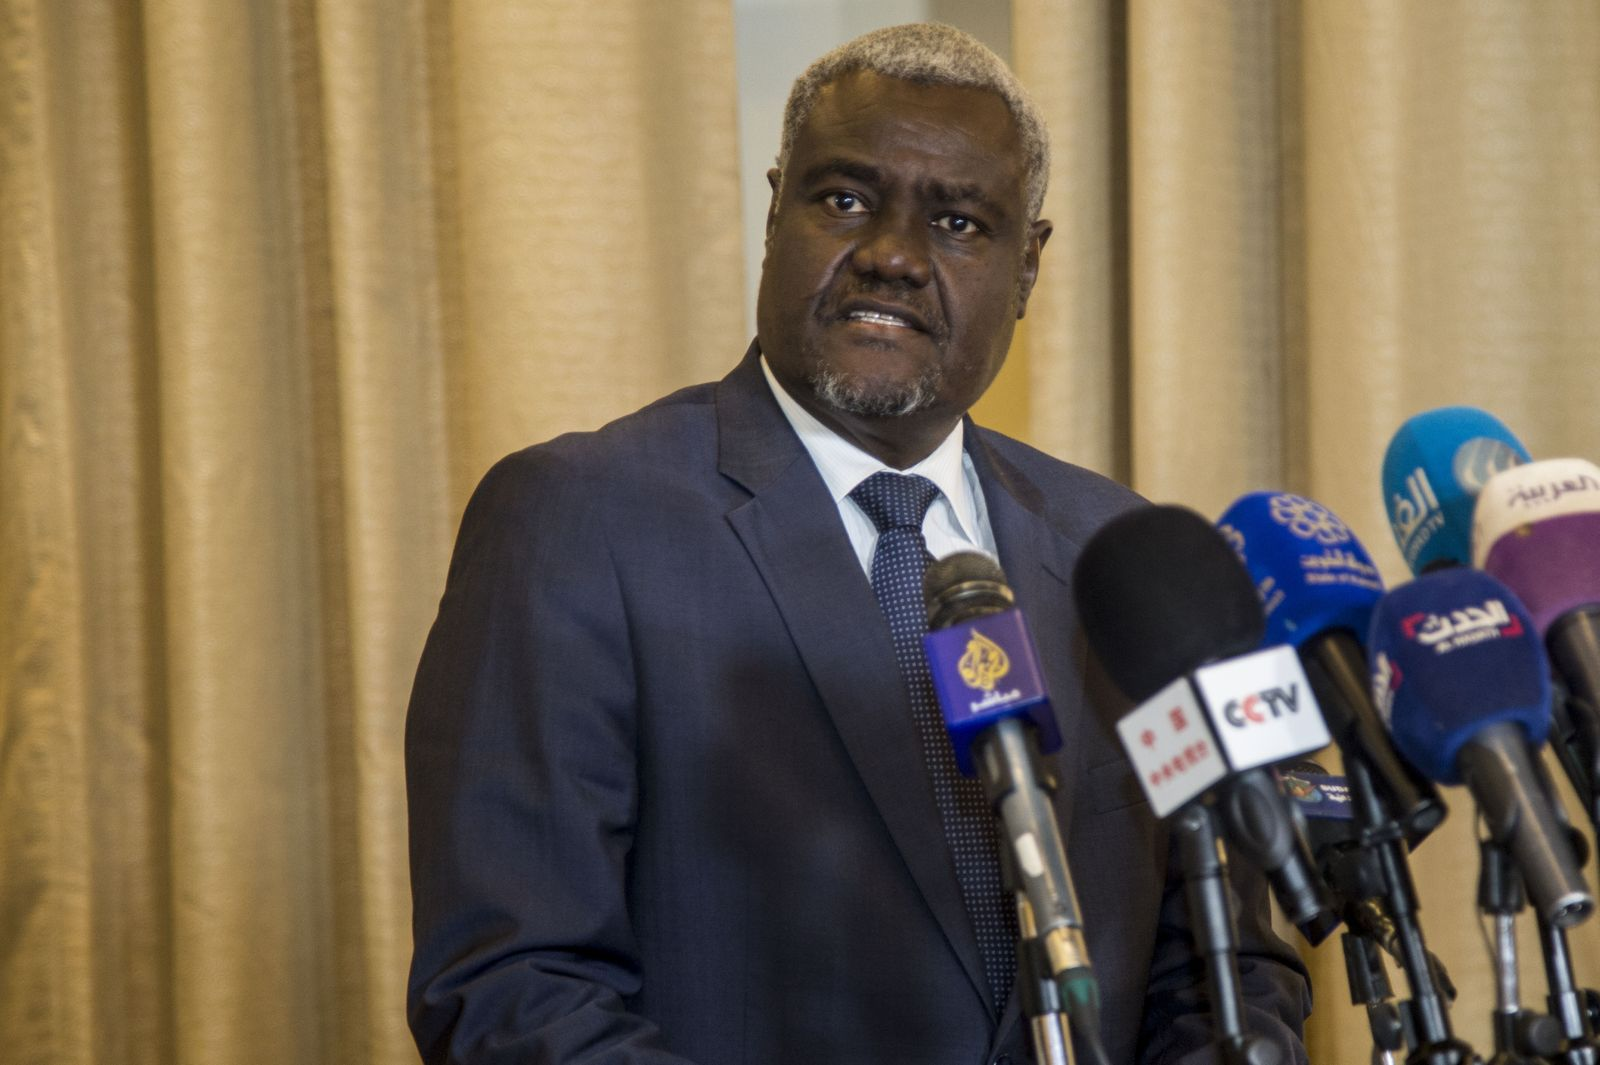 Chairperson of the African Union Commission Moussa Faki in Sudan